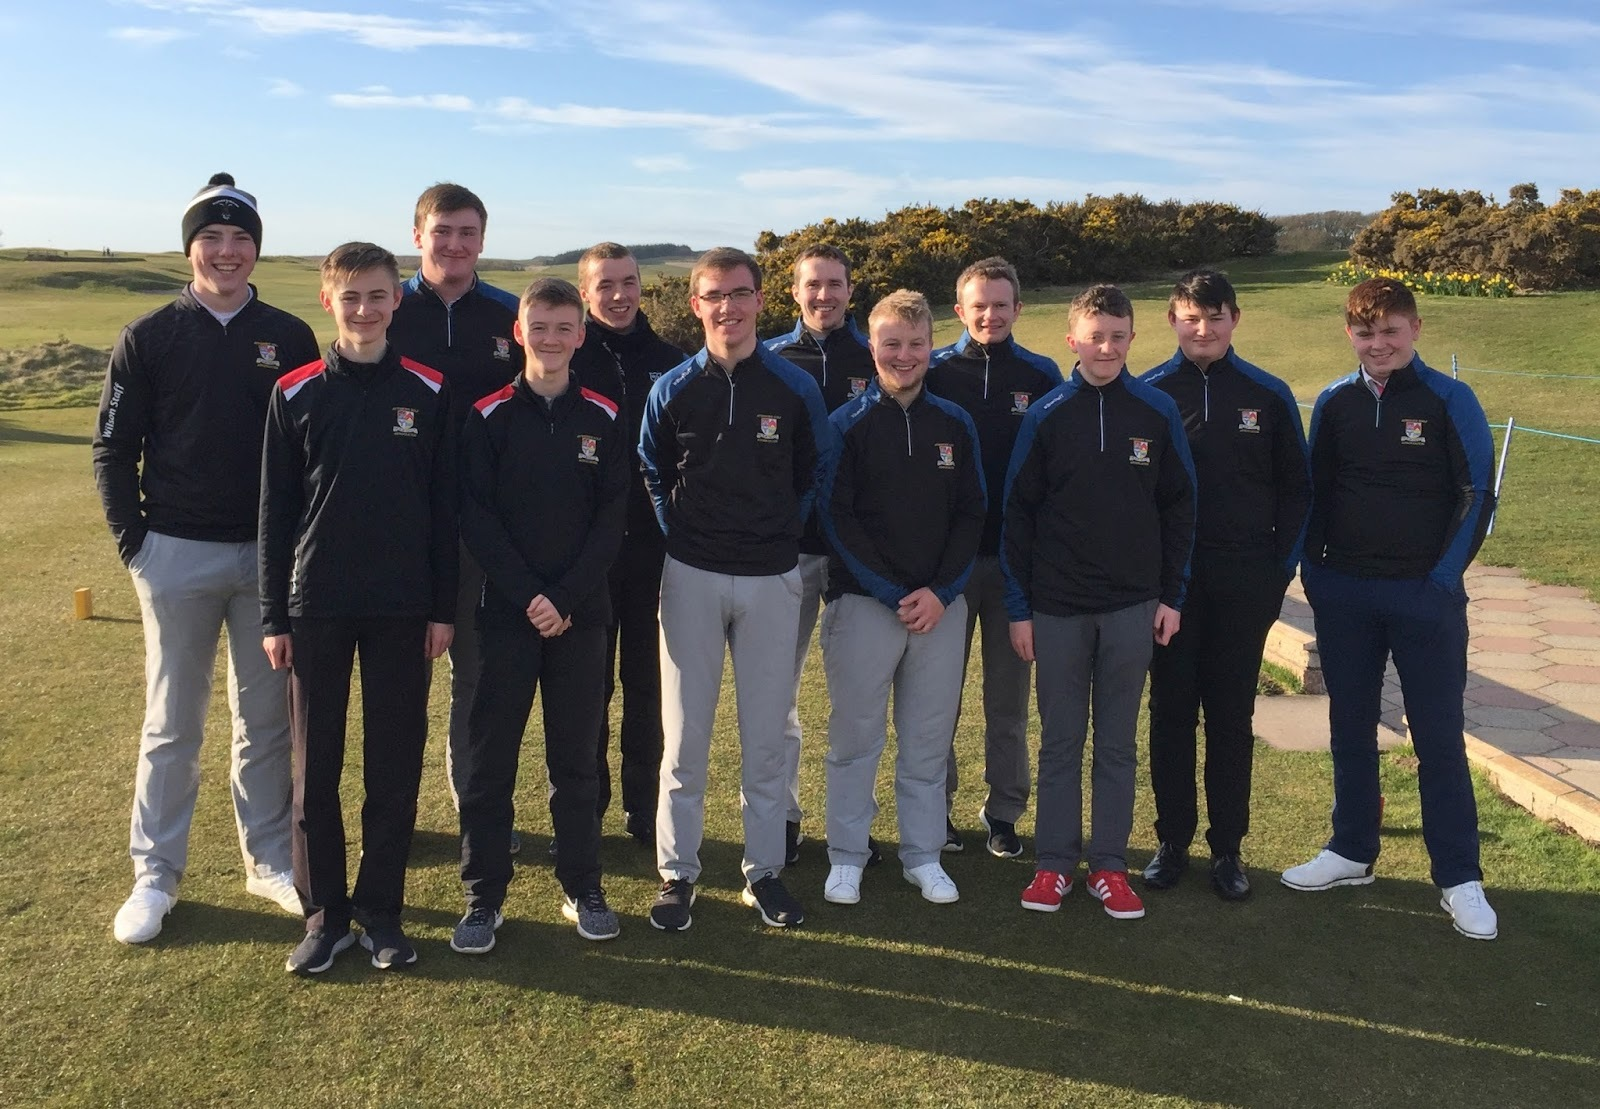 :LOSING TEAM: Ayrshire were beaten by South of Scotland in the Centenary Trophy event.